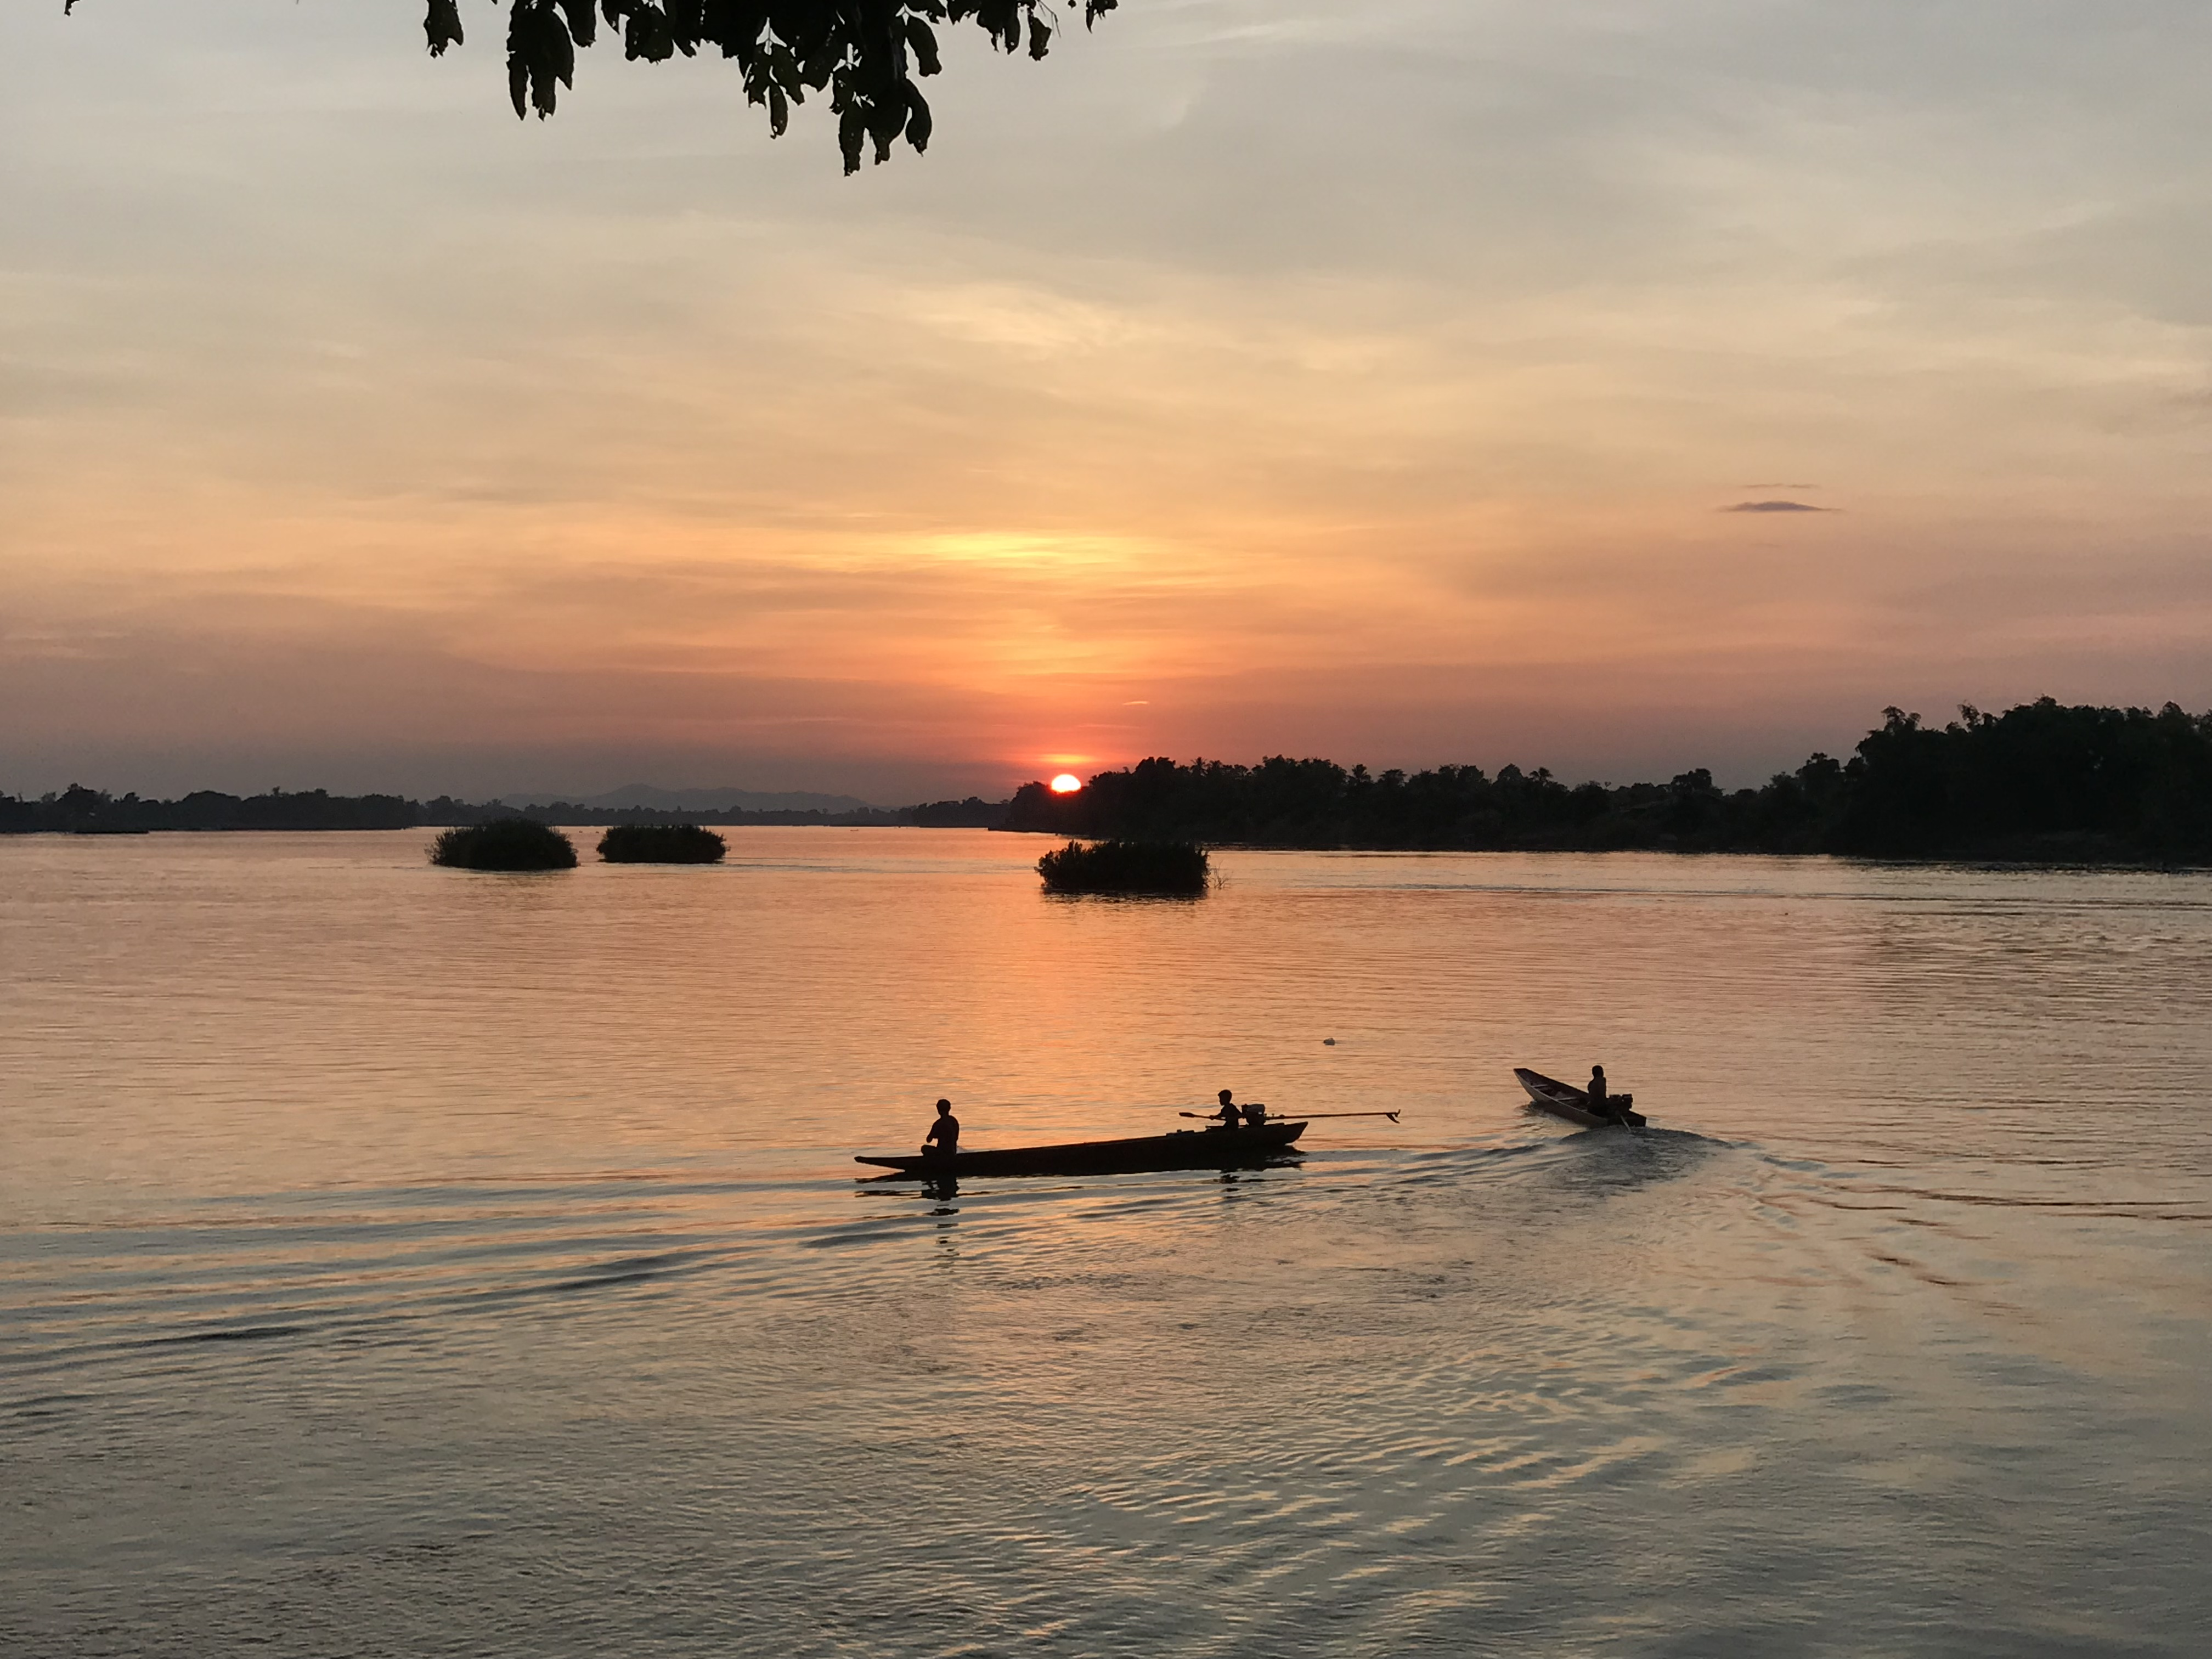 Sunset over the Mekong, Don Det, Laos